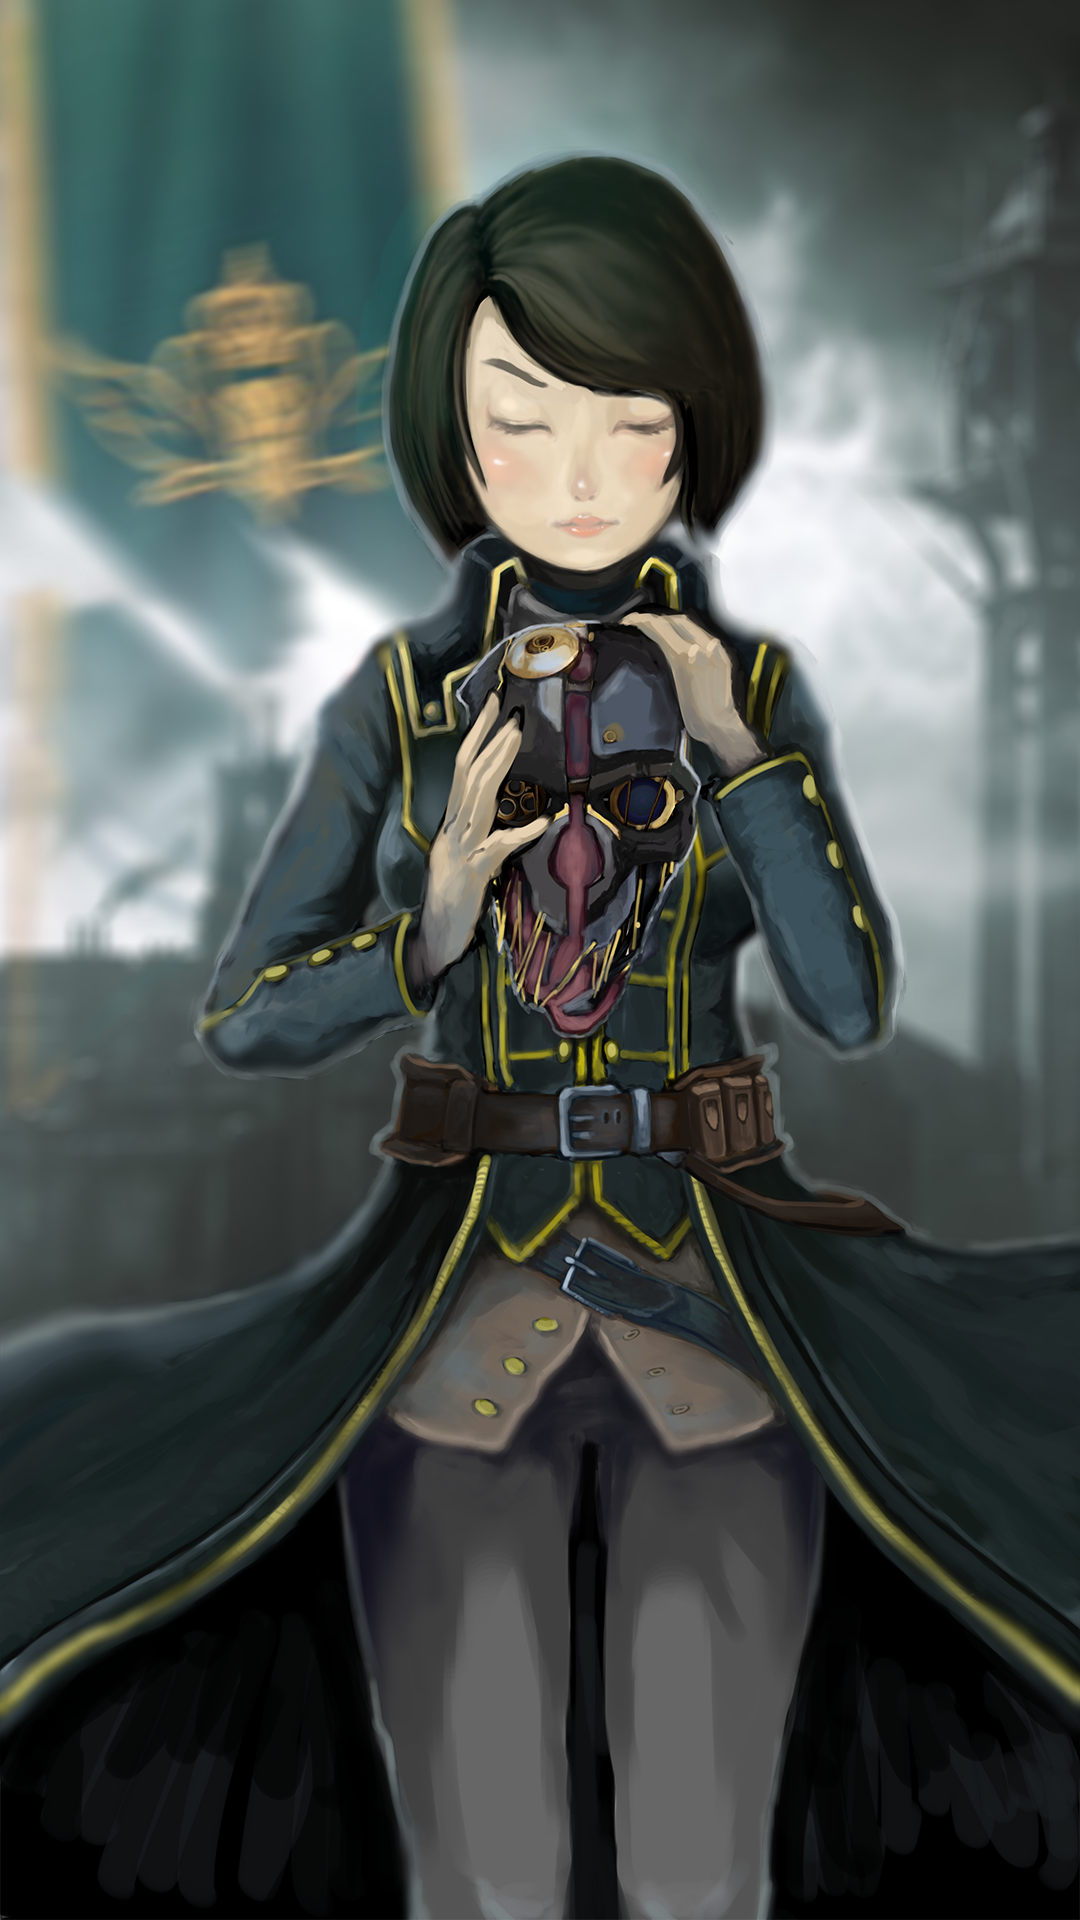 Dishonored: Lady Emily by rosa89n20